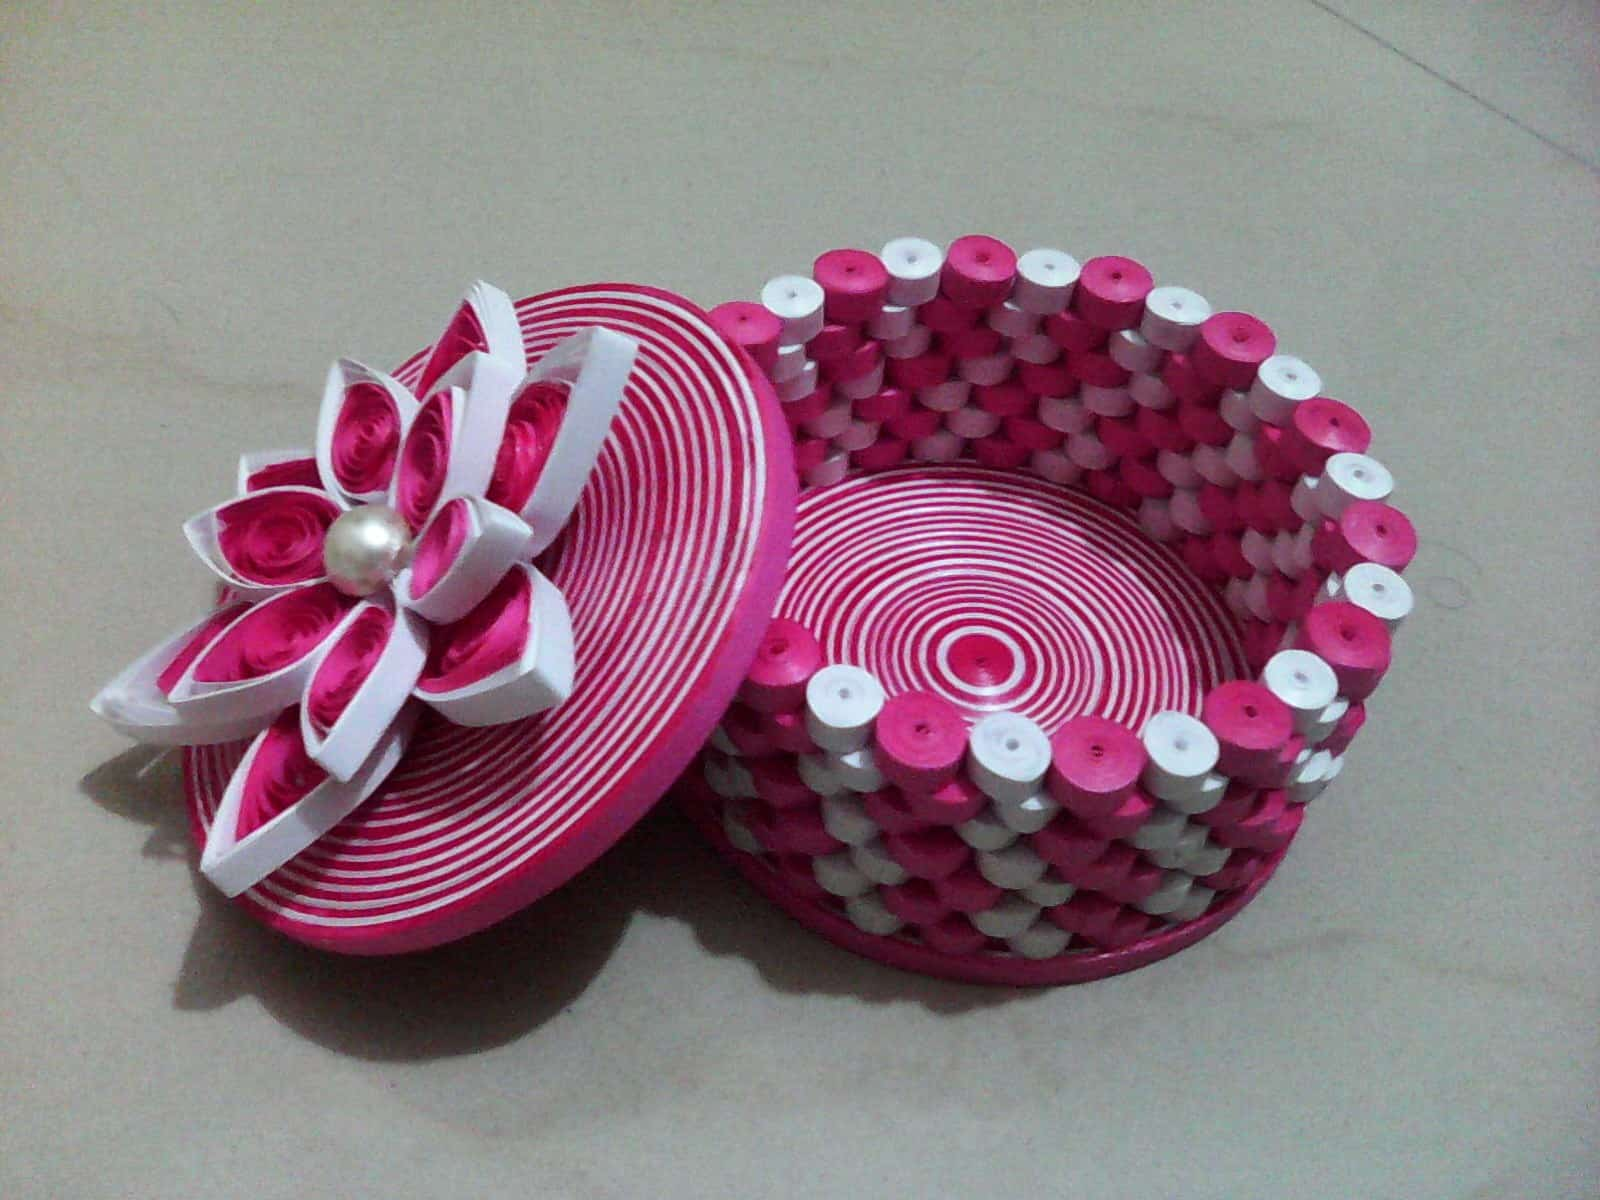 3D quilled gift box